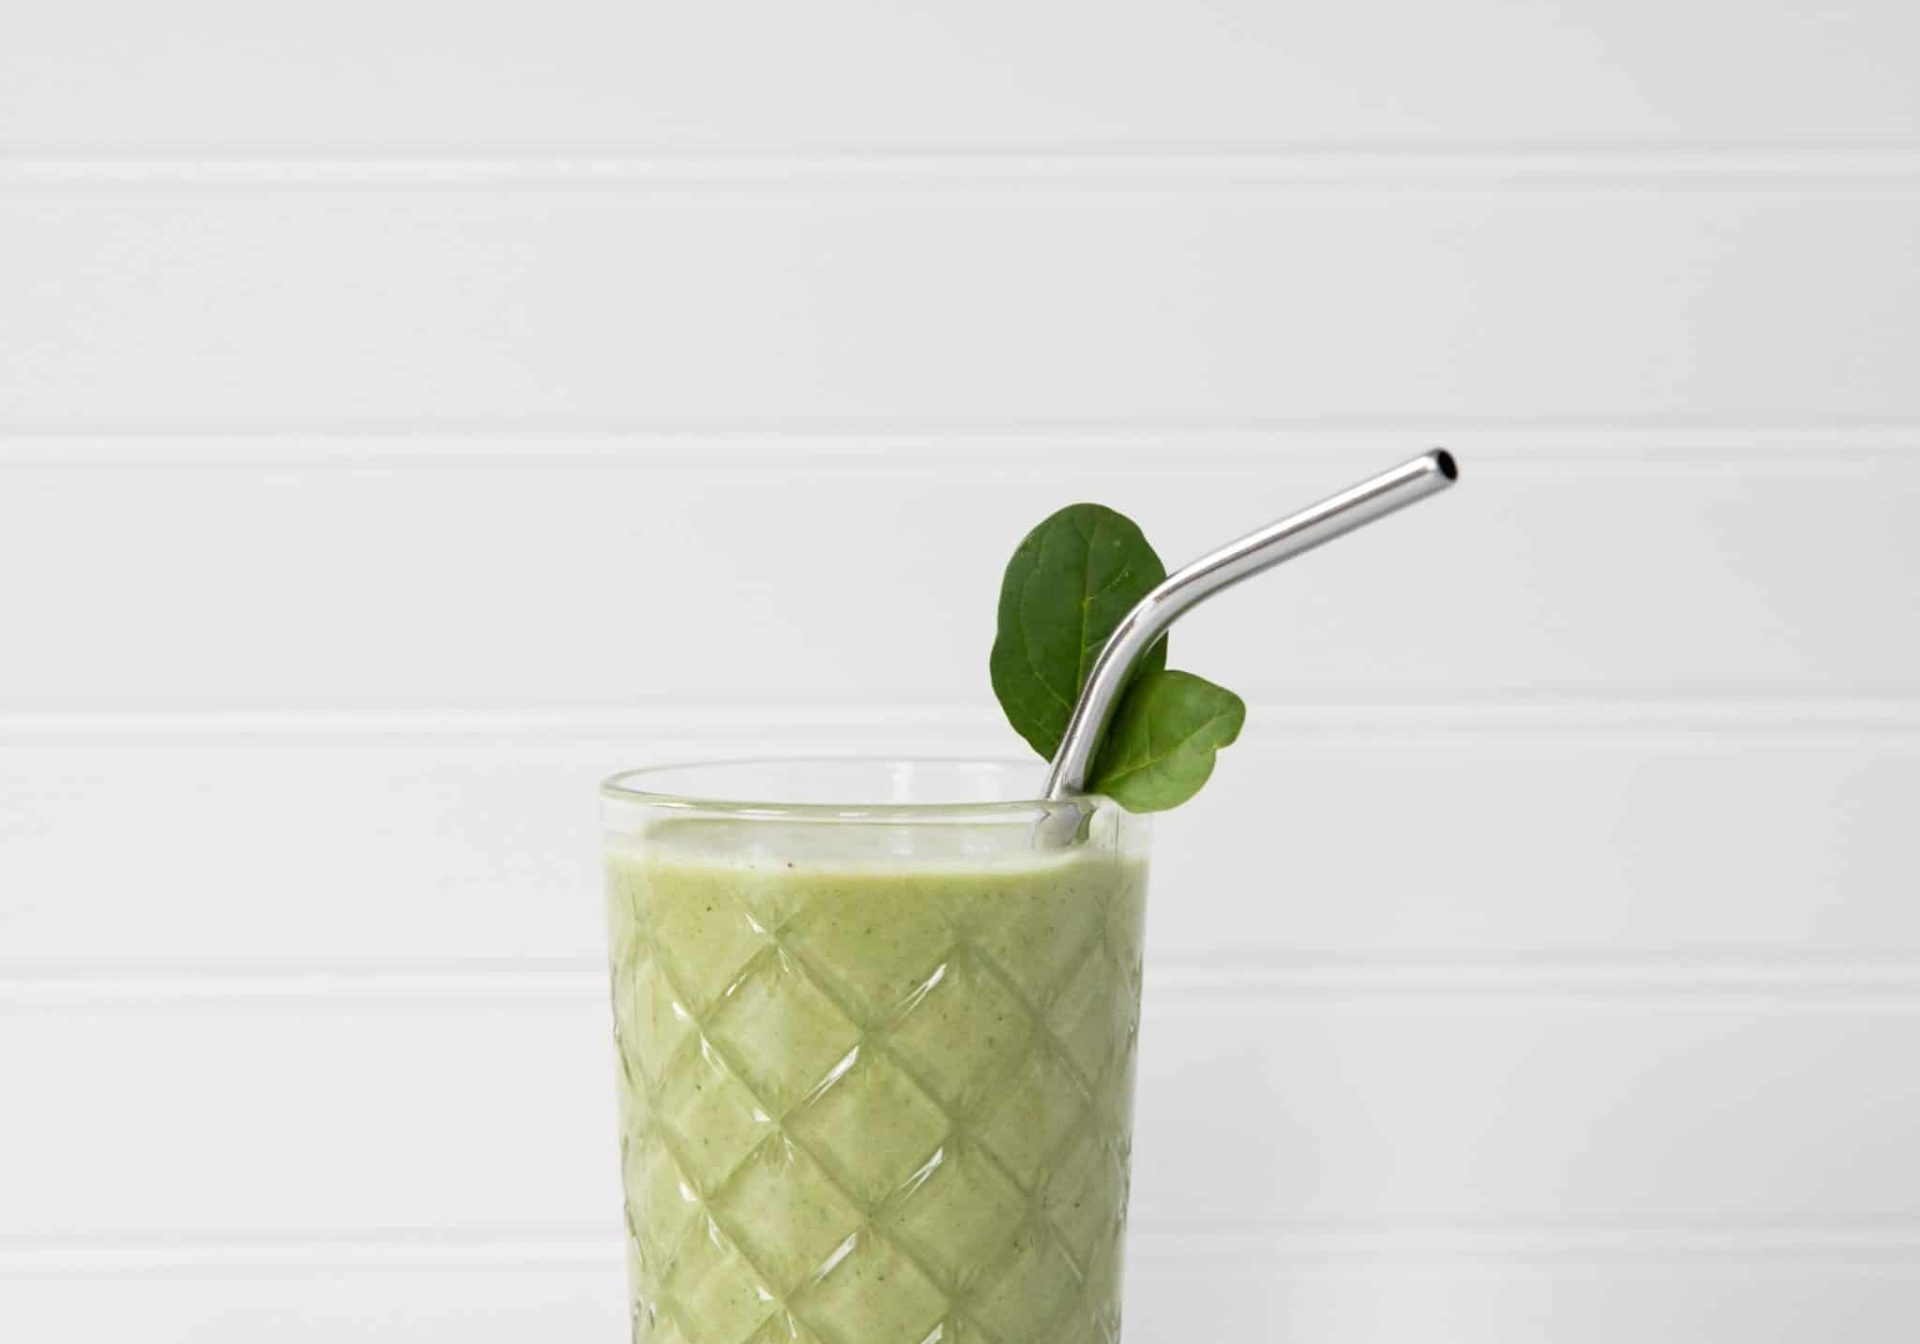 A green drink in a glass, with a metal straw and leaf garnish